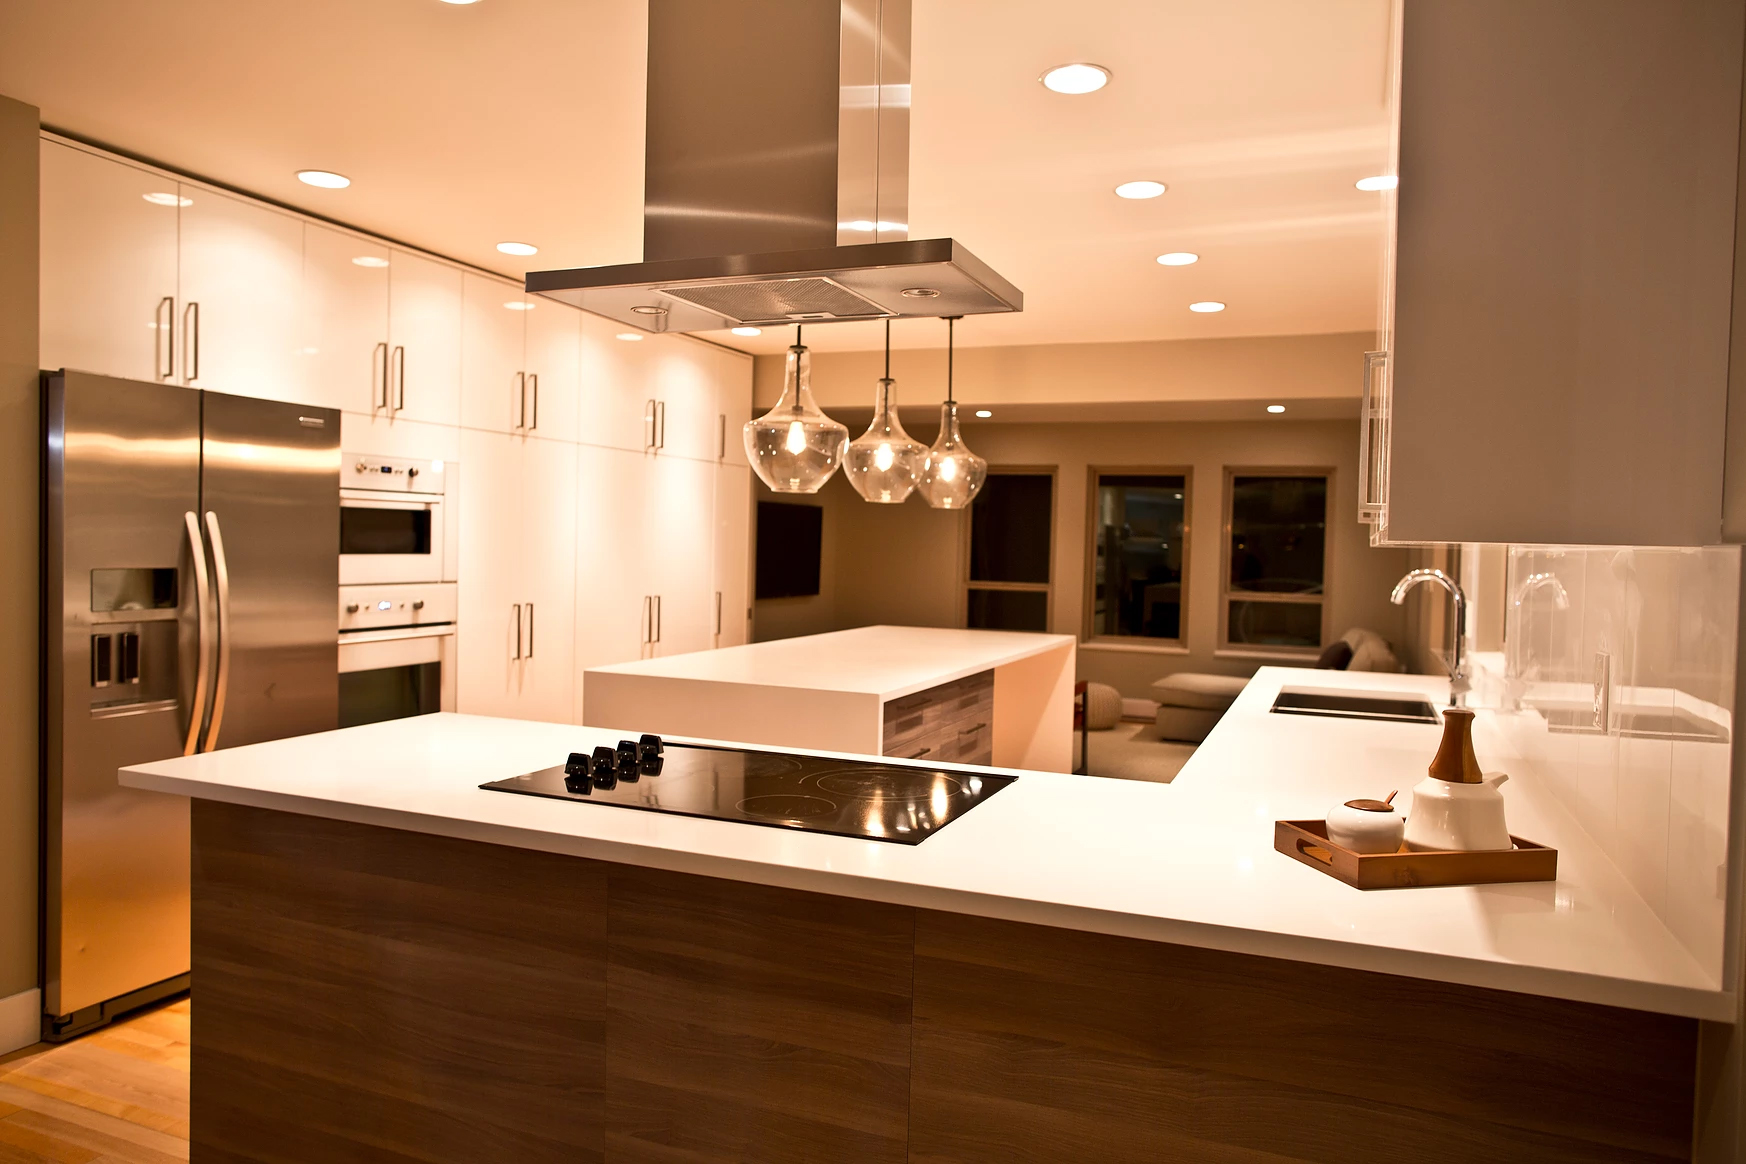 Kitchen - Well designed cabinets and beautiful fixtures shape this bright, open space.